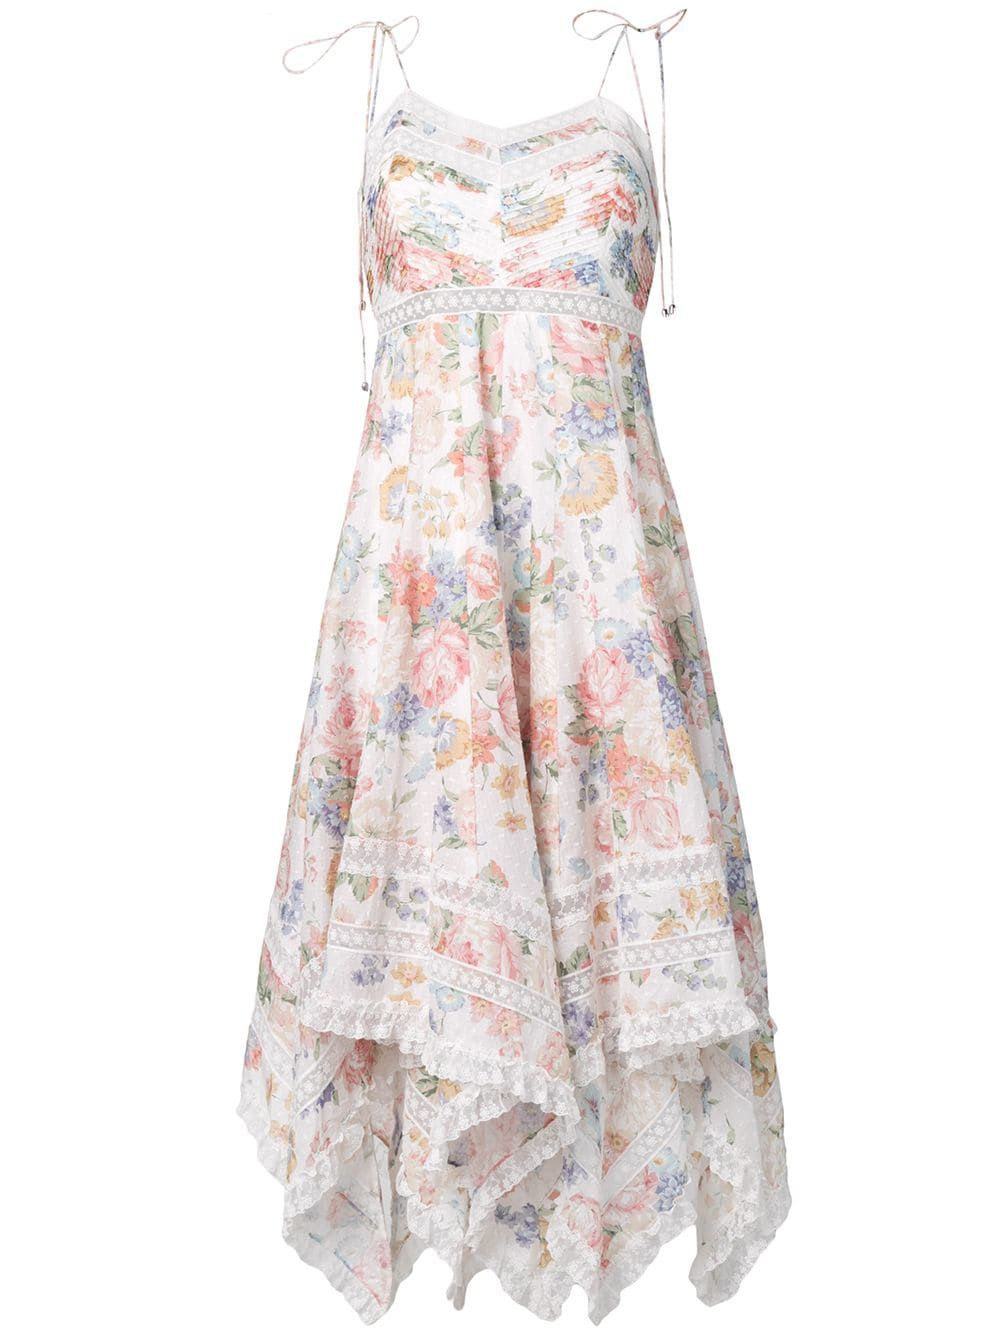 44dc4f9c33 Zimmermann floral print flutter dress - White in 2019   Products ...